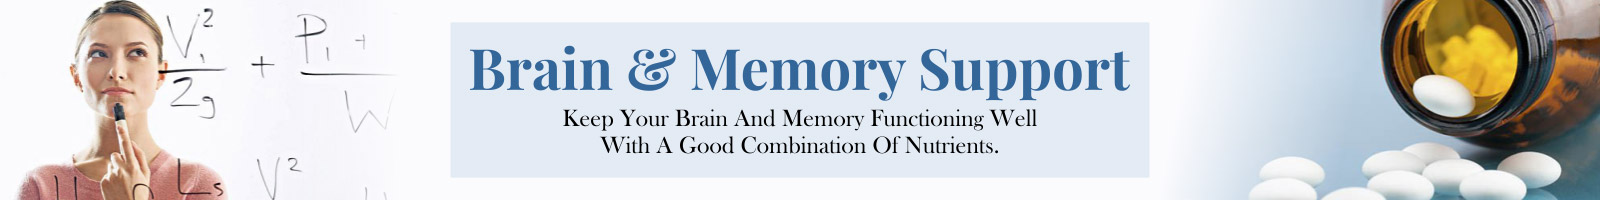 Brain & Memory support